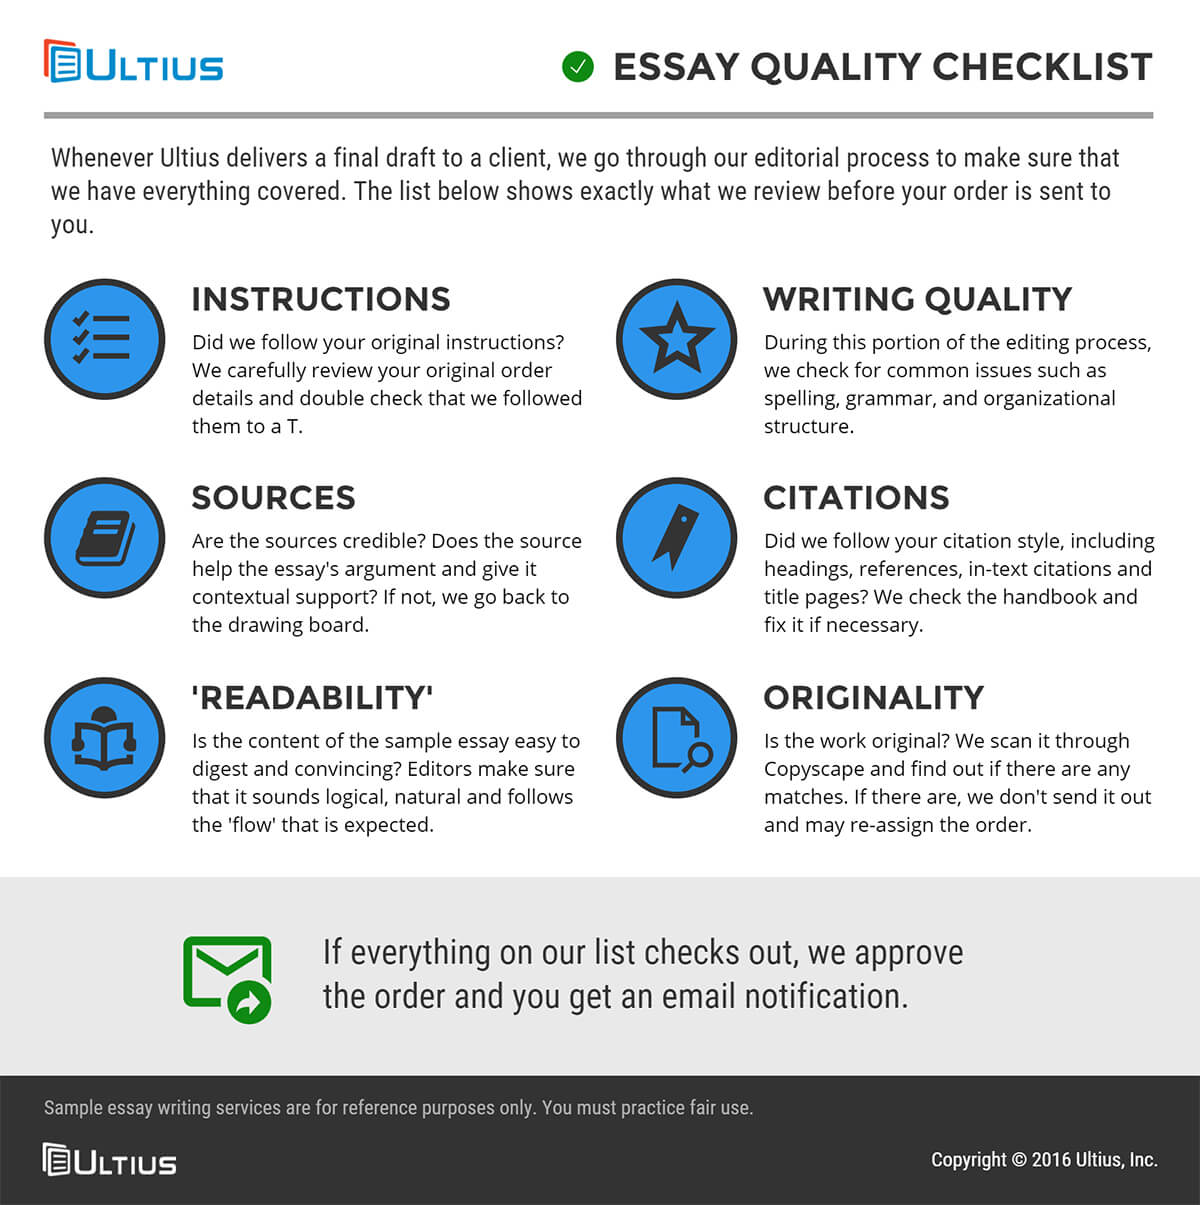 017 Purchased Essay Quality Checklist Example Writing Exceptional A Persuasive Thesis Statement For Middle School Argumentative Ppt 4th Grade Full